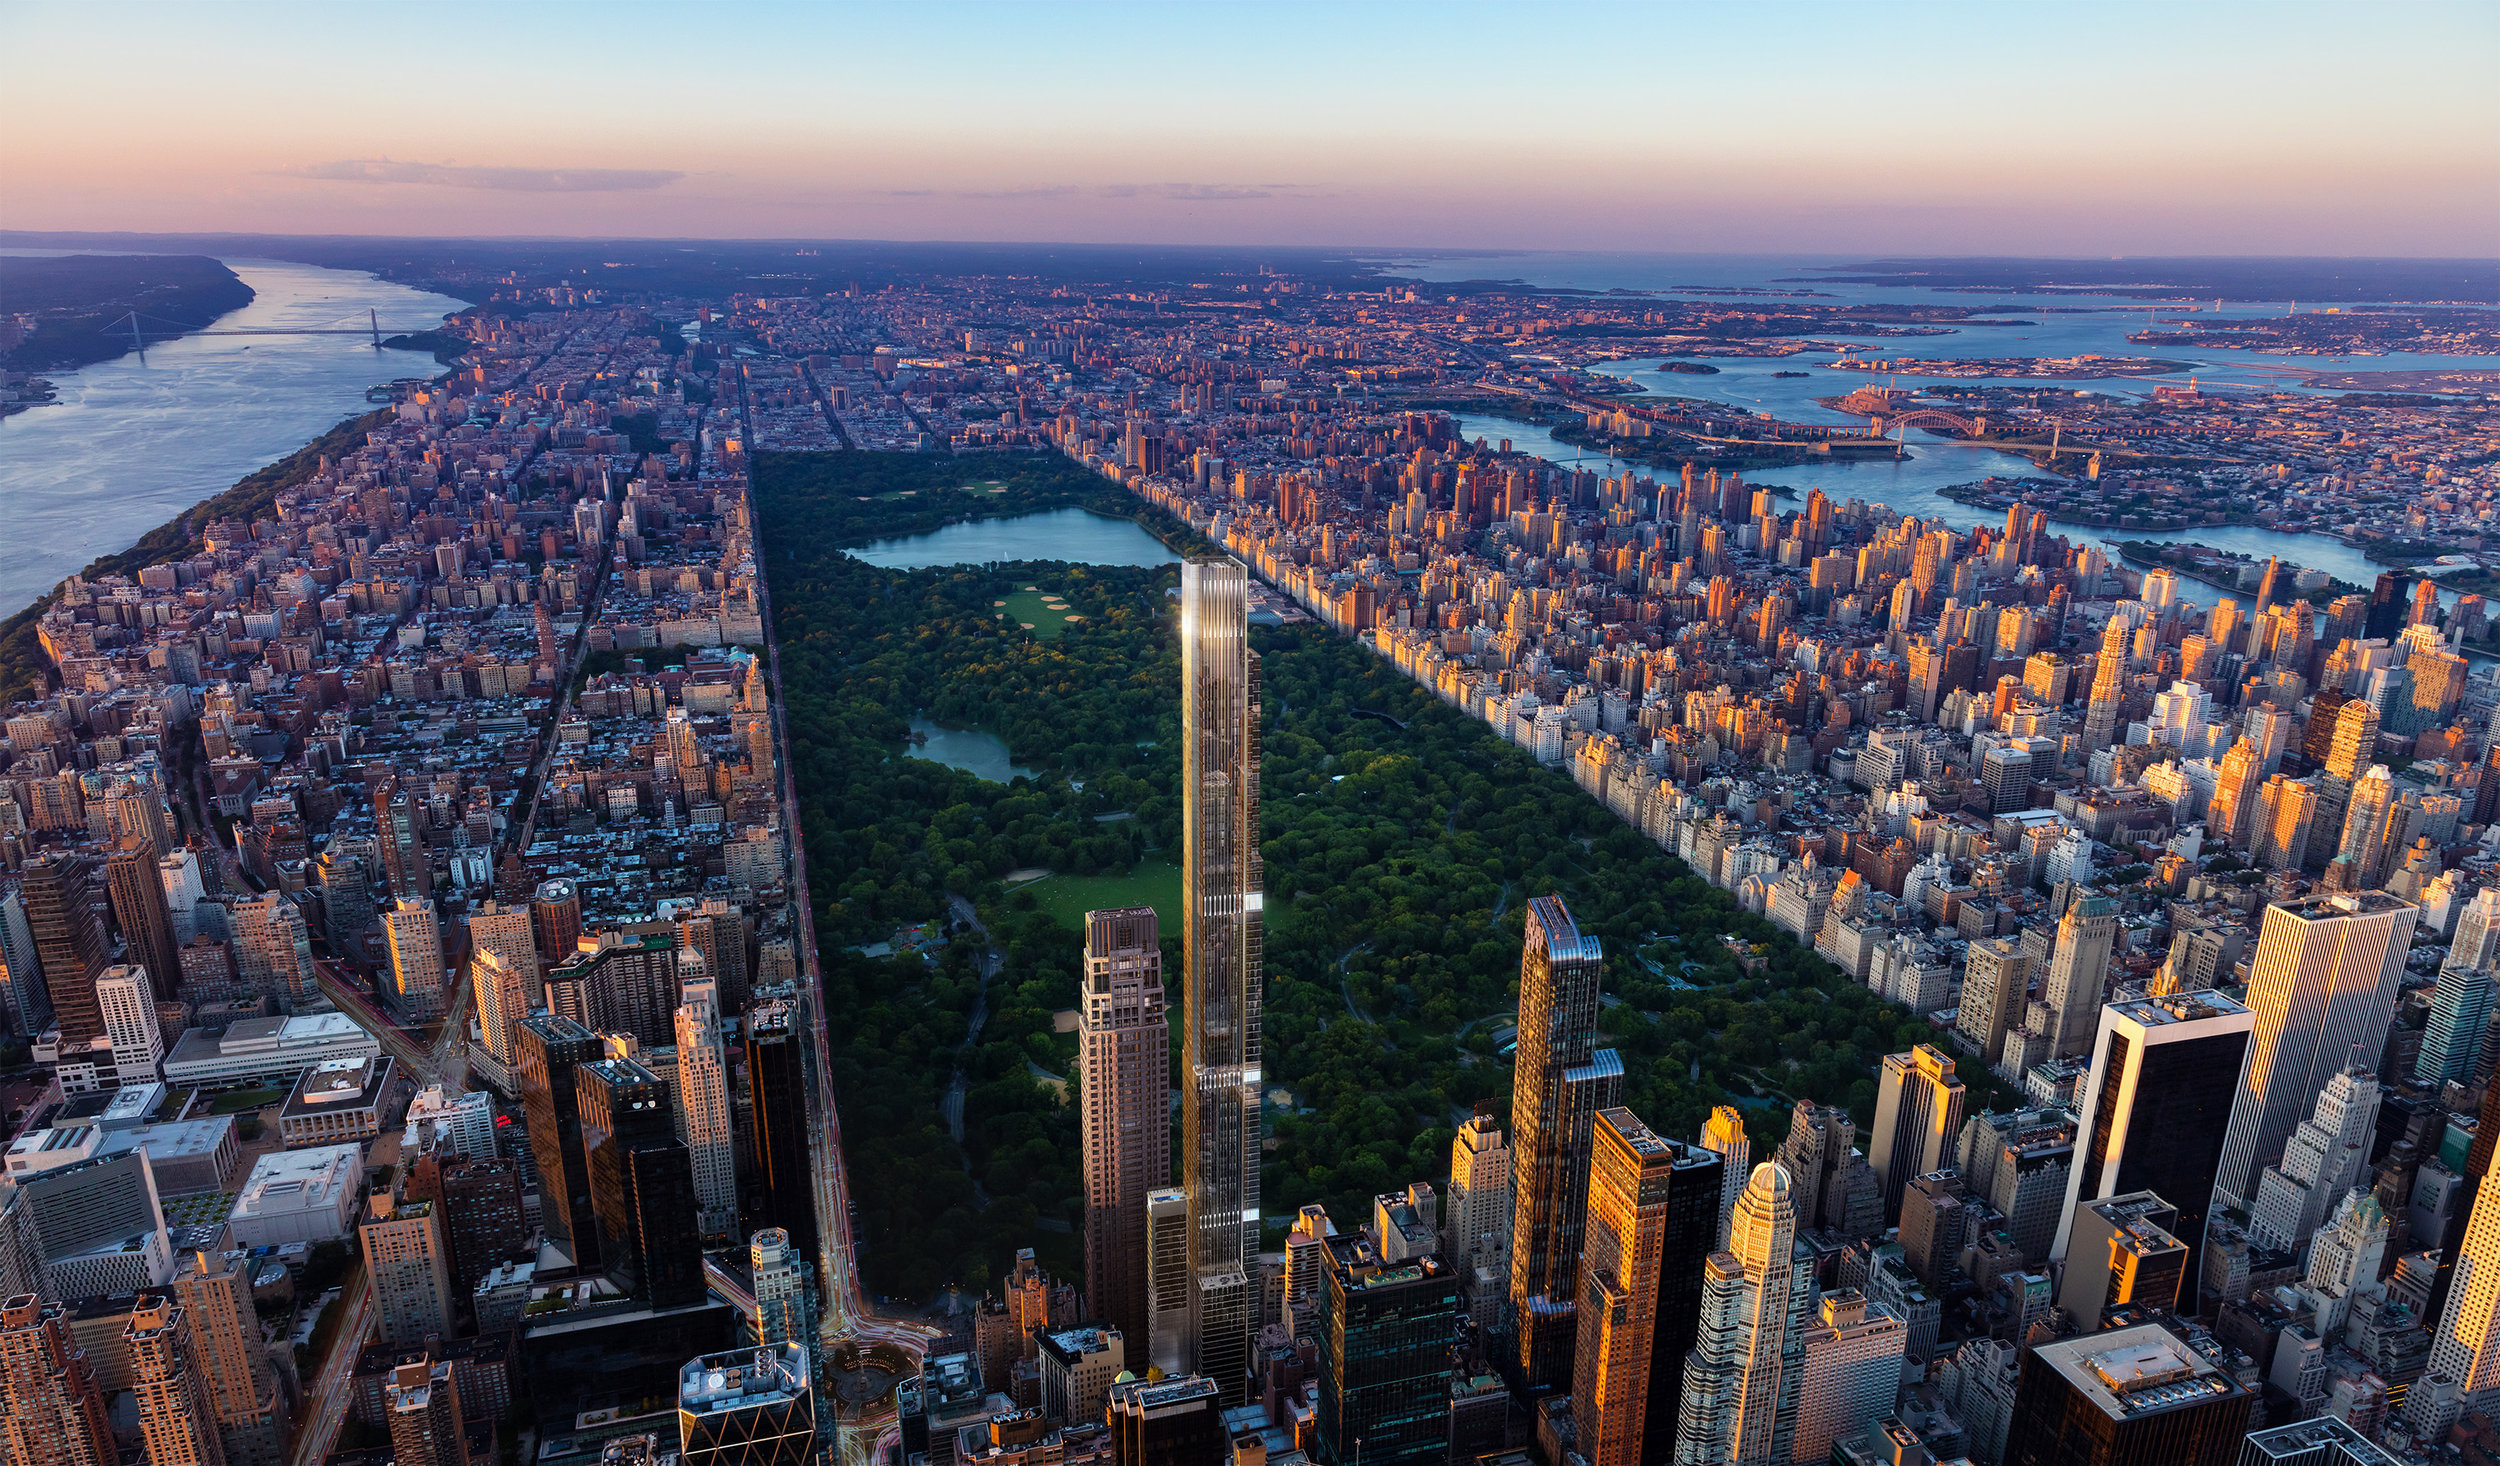 Extell's Central Park Tower, Soon To Be The World's Tallest Residential Tower, Launches Sales